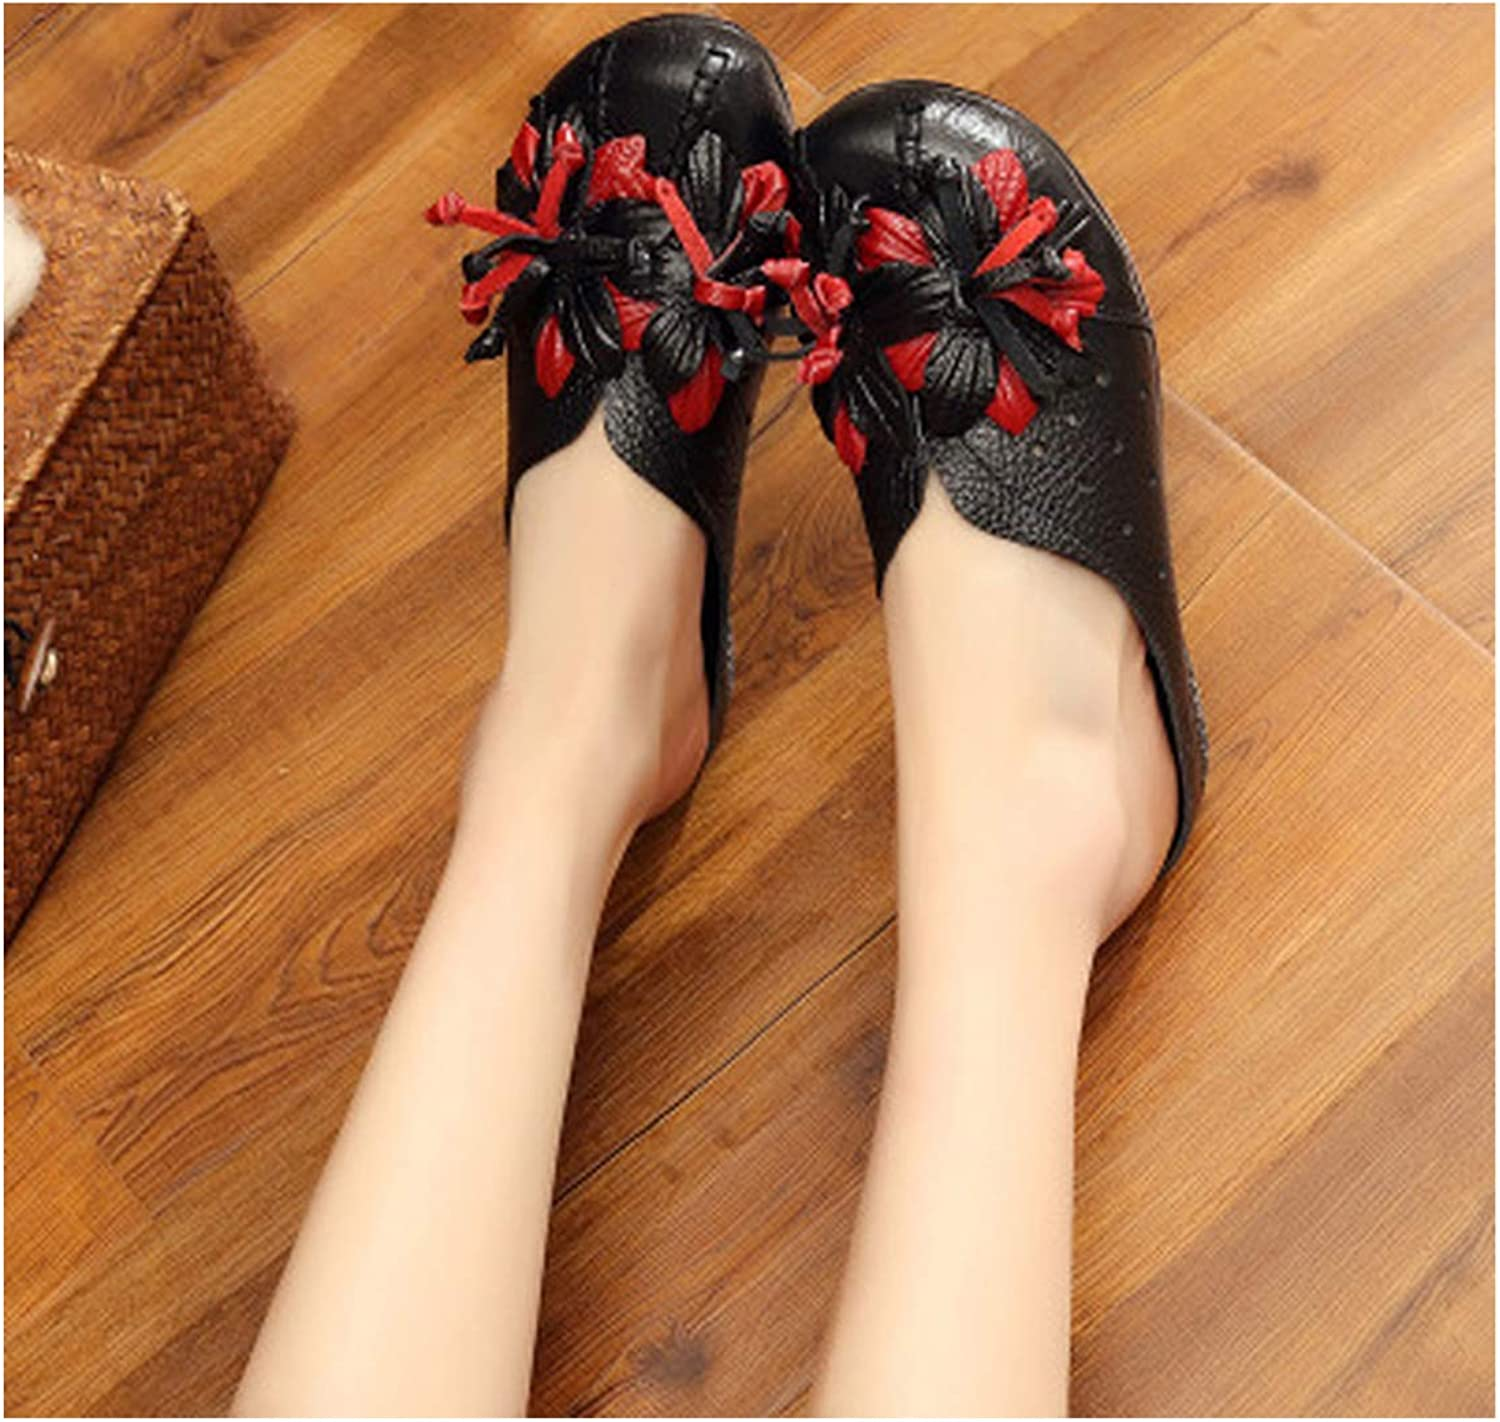 PREtty-2 Woman Genuine Leather shoes Slippers Slip-On Outdoor Slippers shoes Flat with Sandals Floral